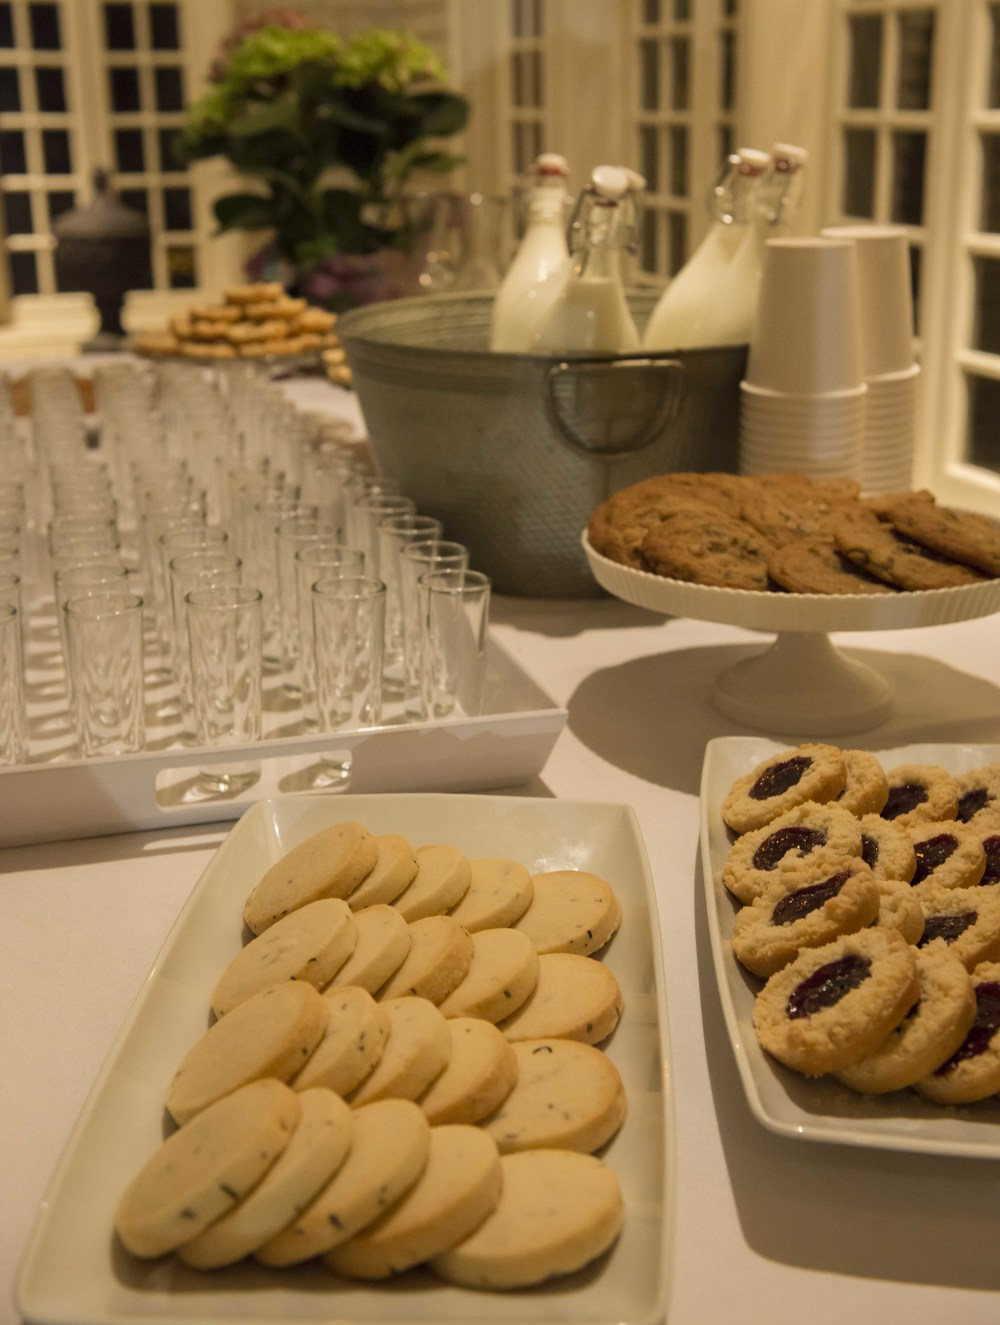 Baking Bandits  provided Milk and Cookie Happy Hour after the readings and songs.